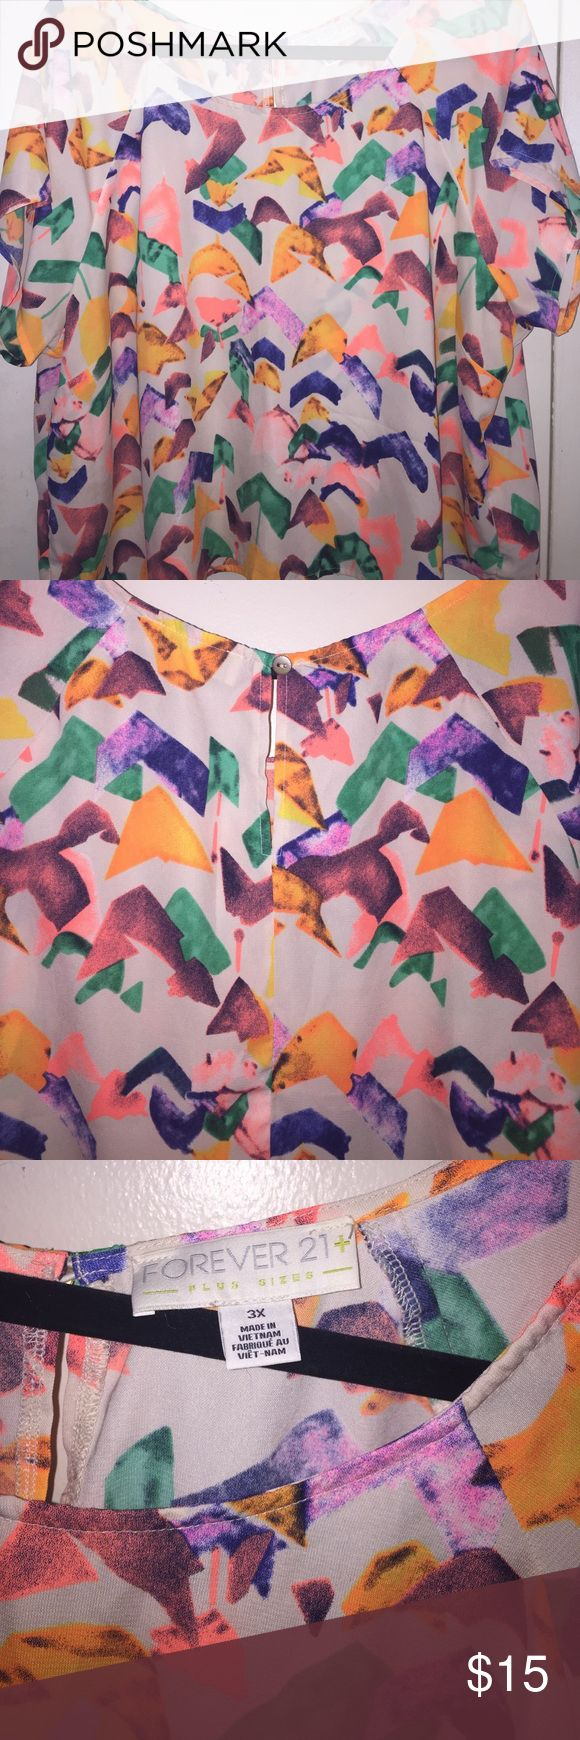 Plus Size Forever 21 Multi Color Crop Top Plus Size Forever 21 Multi Color Crop Top. Lightweight. Worn Once! Forever 21 Tops Blouses